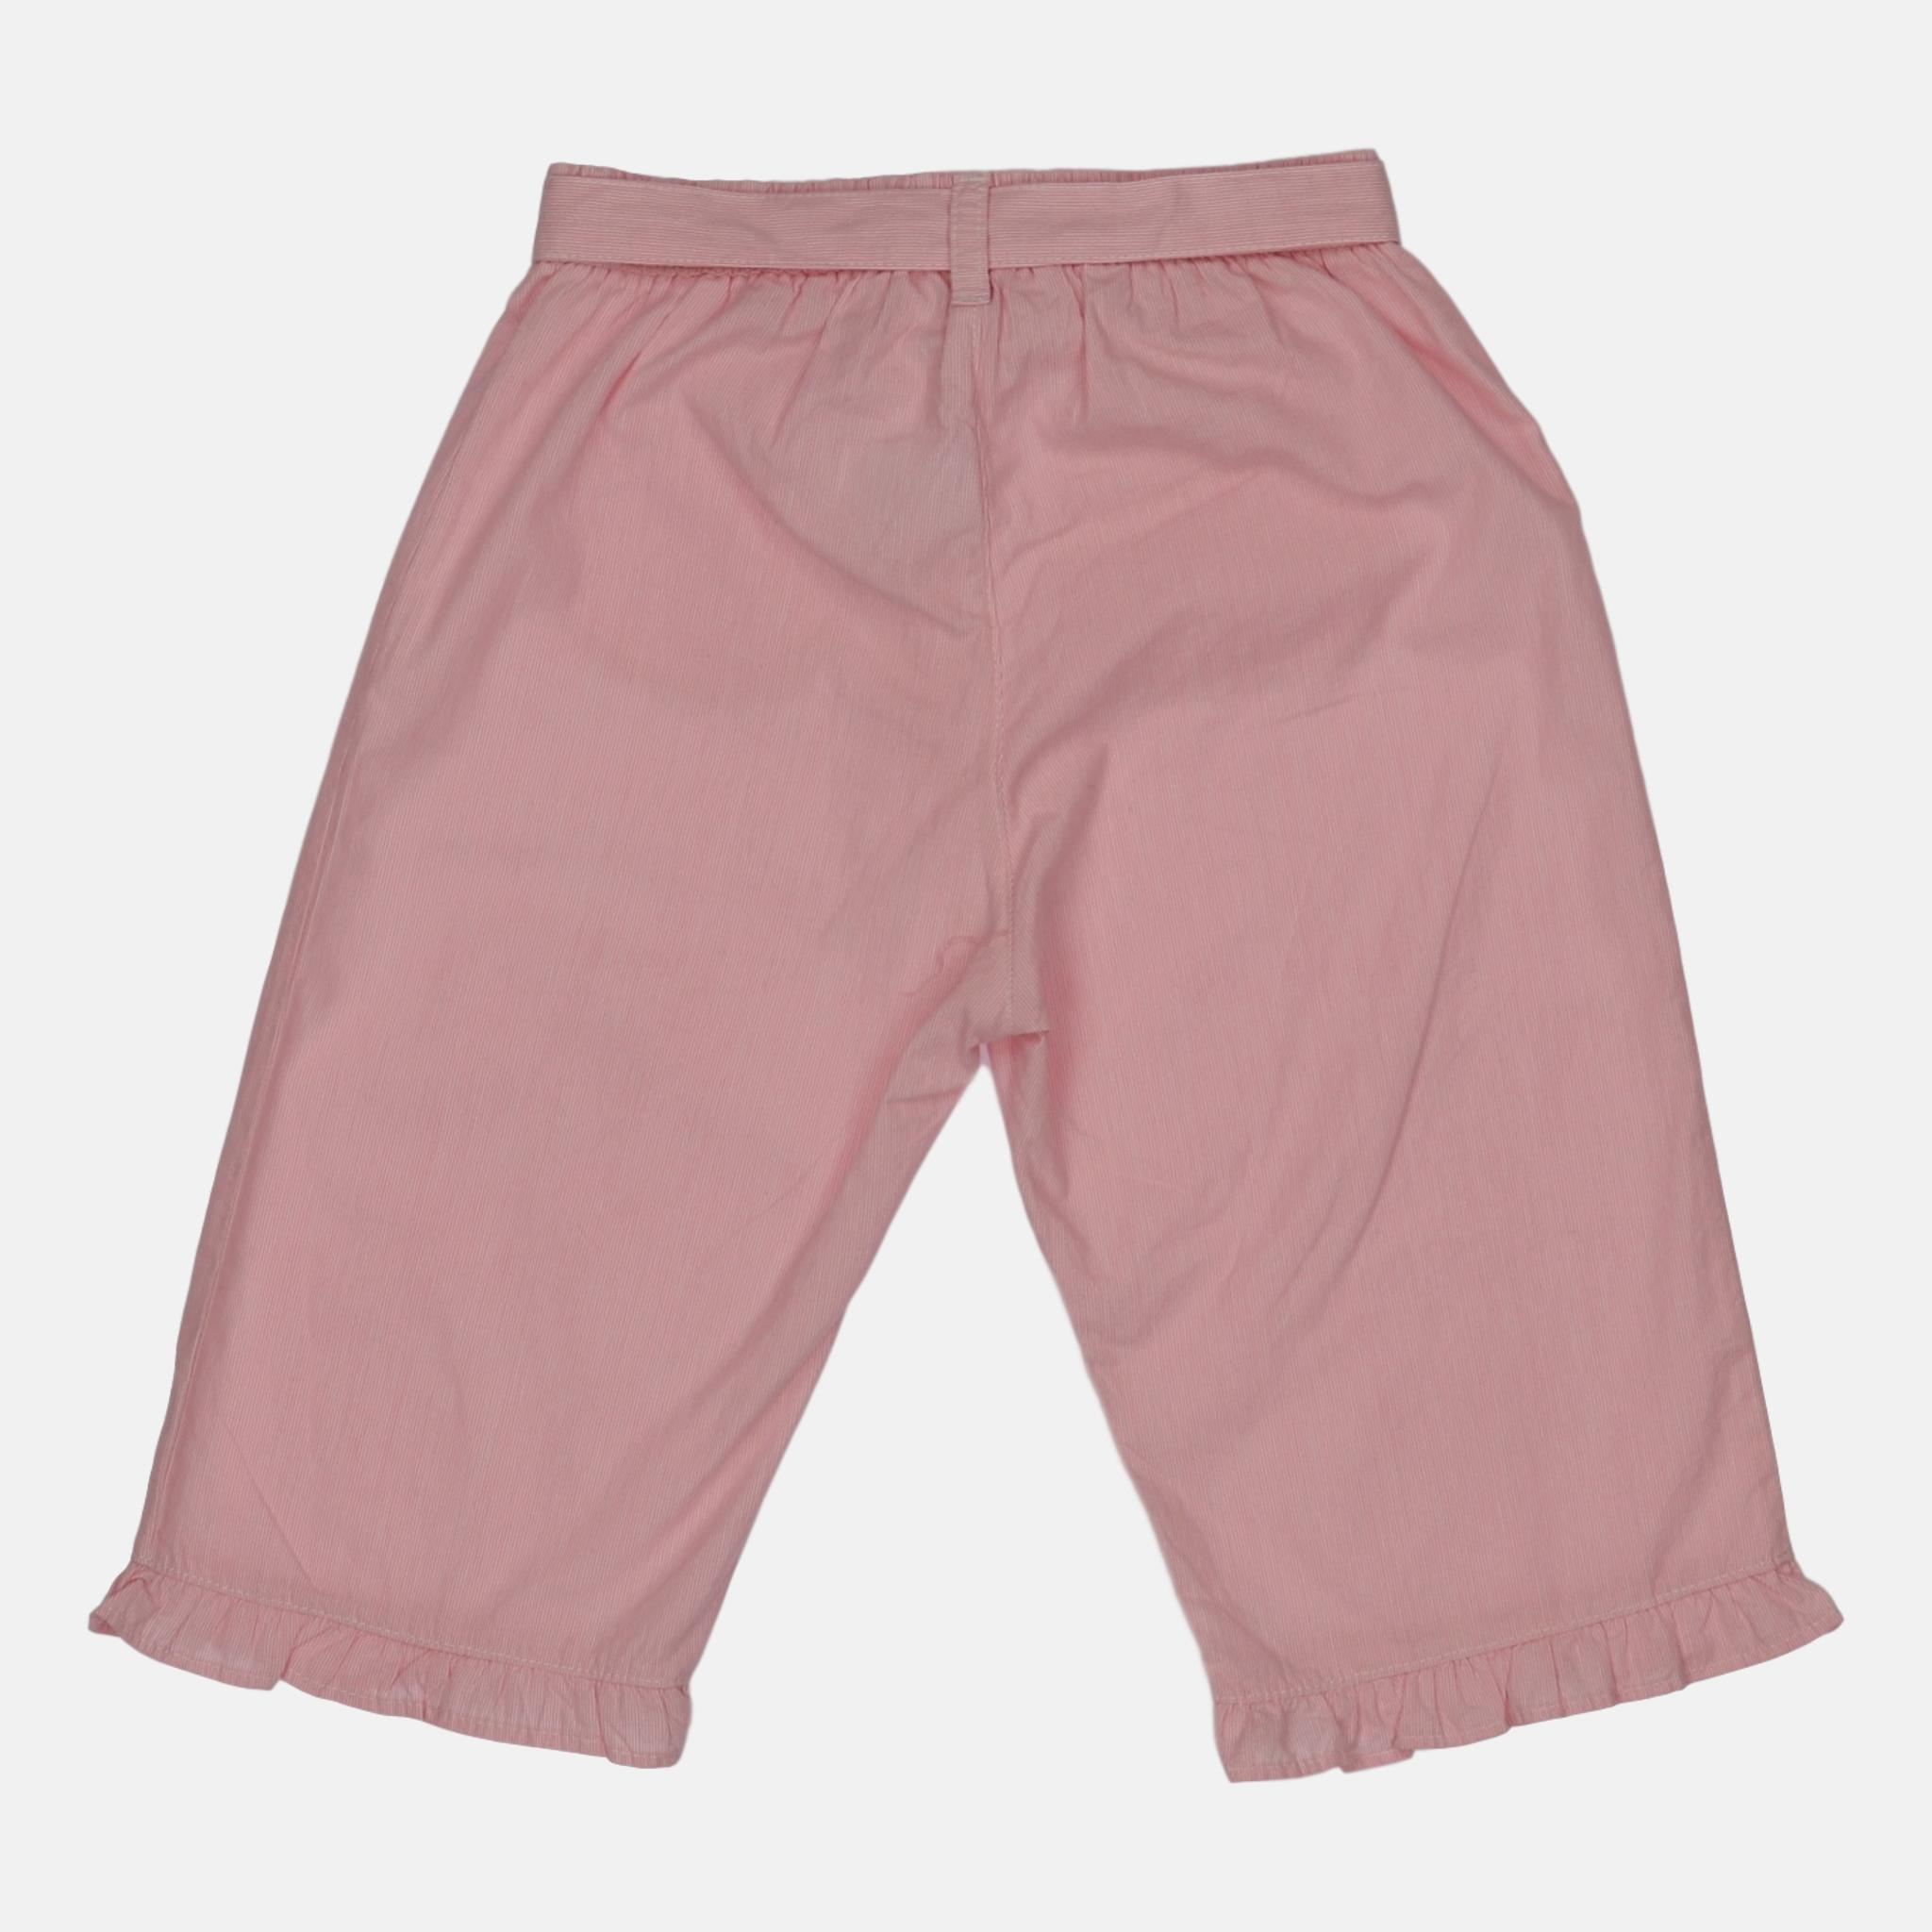 Trousers, 4-5 years